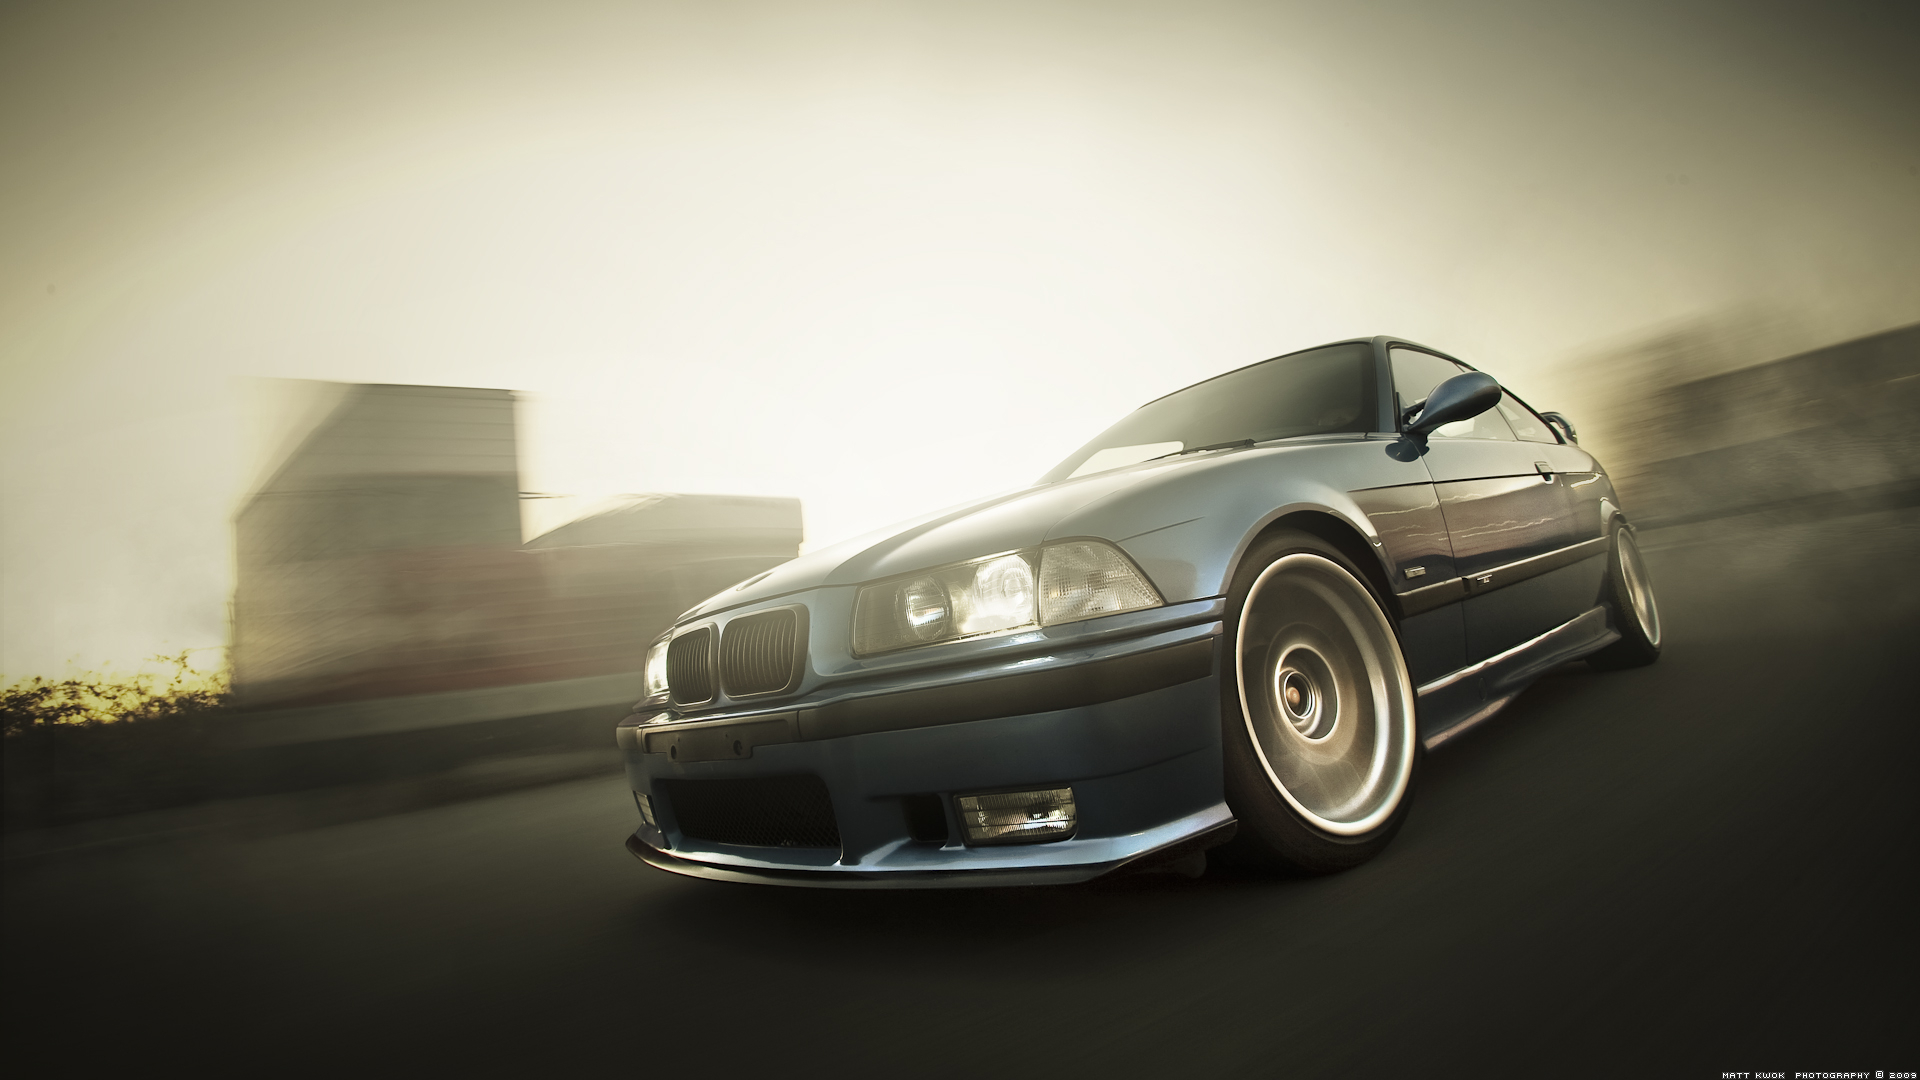 Bmw E36 Mobile Wallpapers Bmw E36 Wallpapers